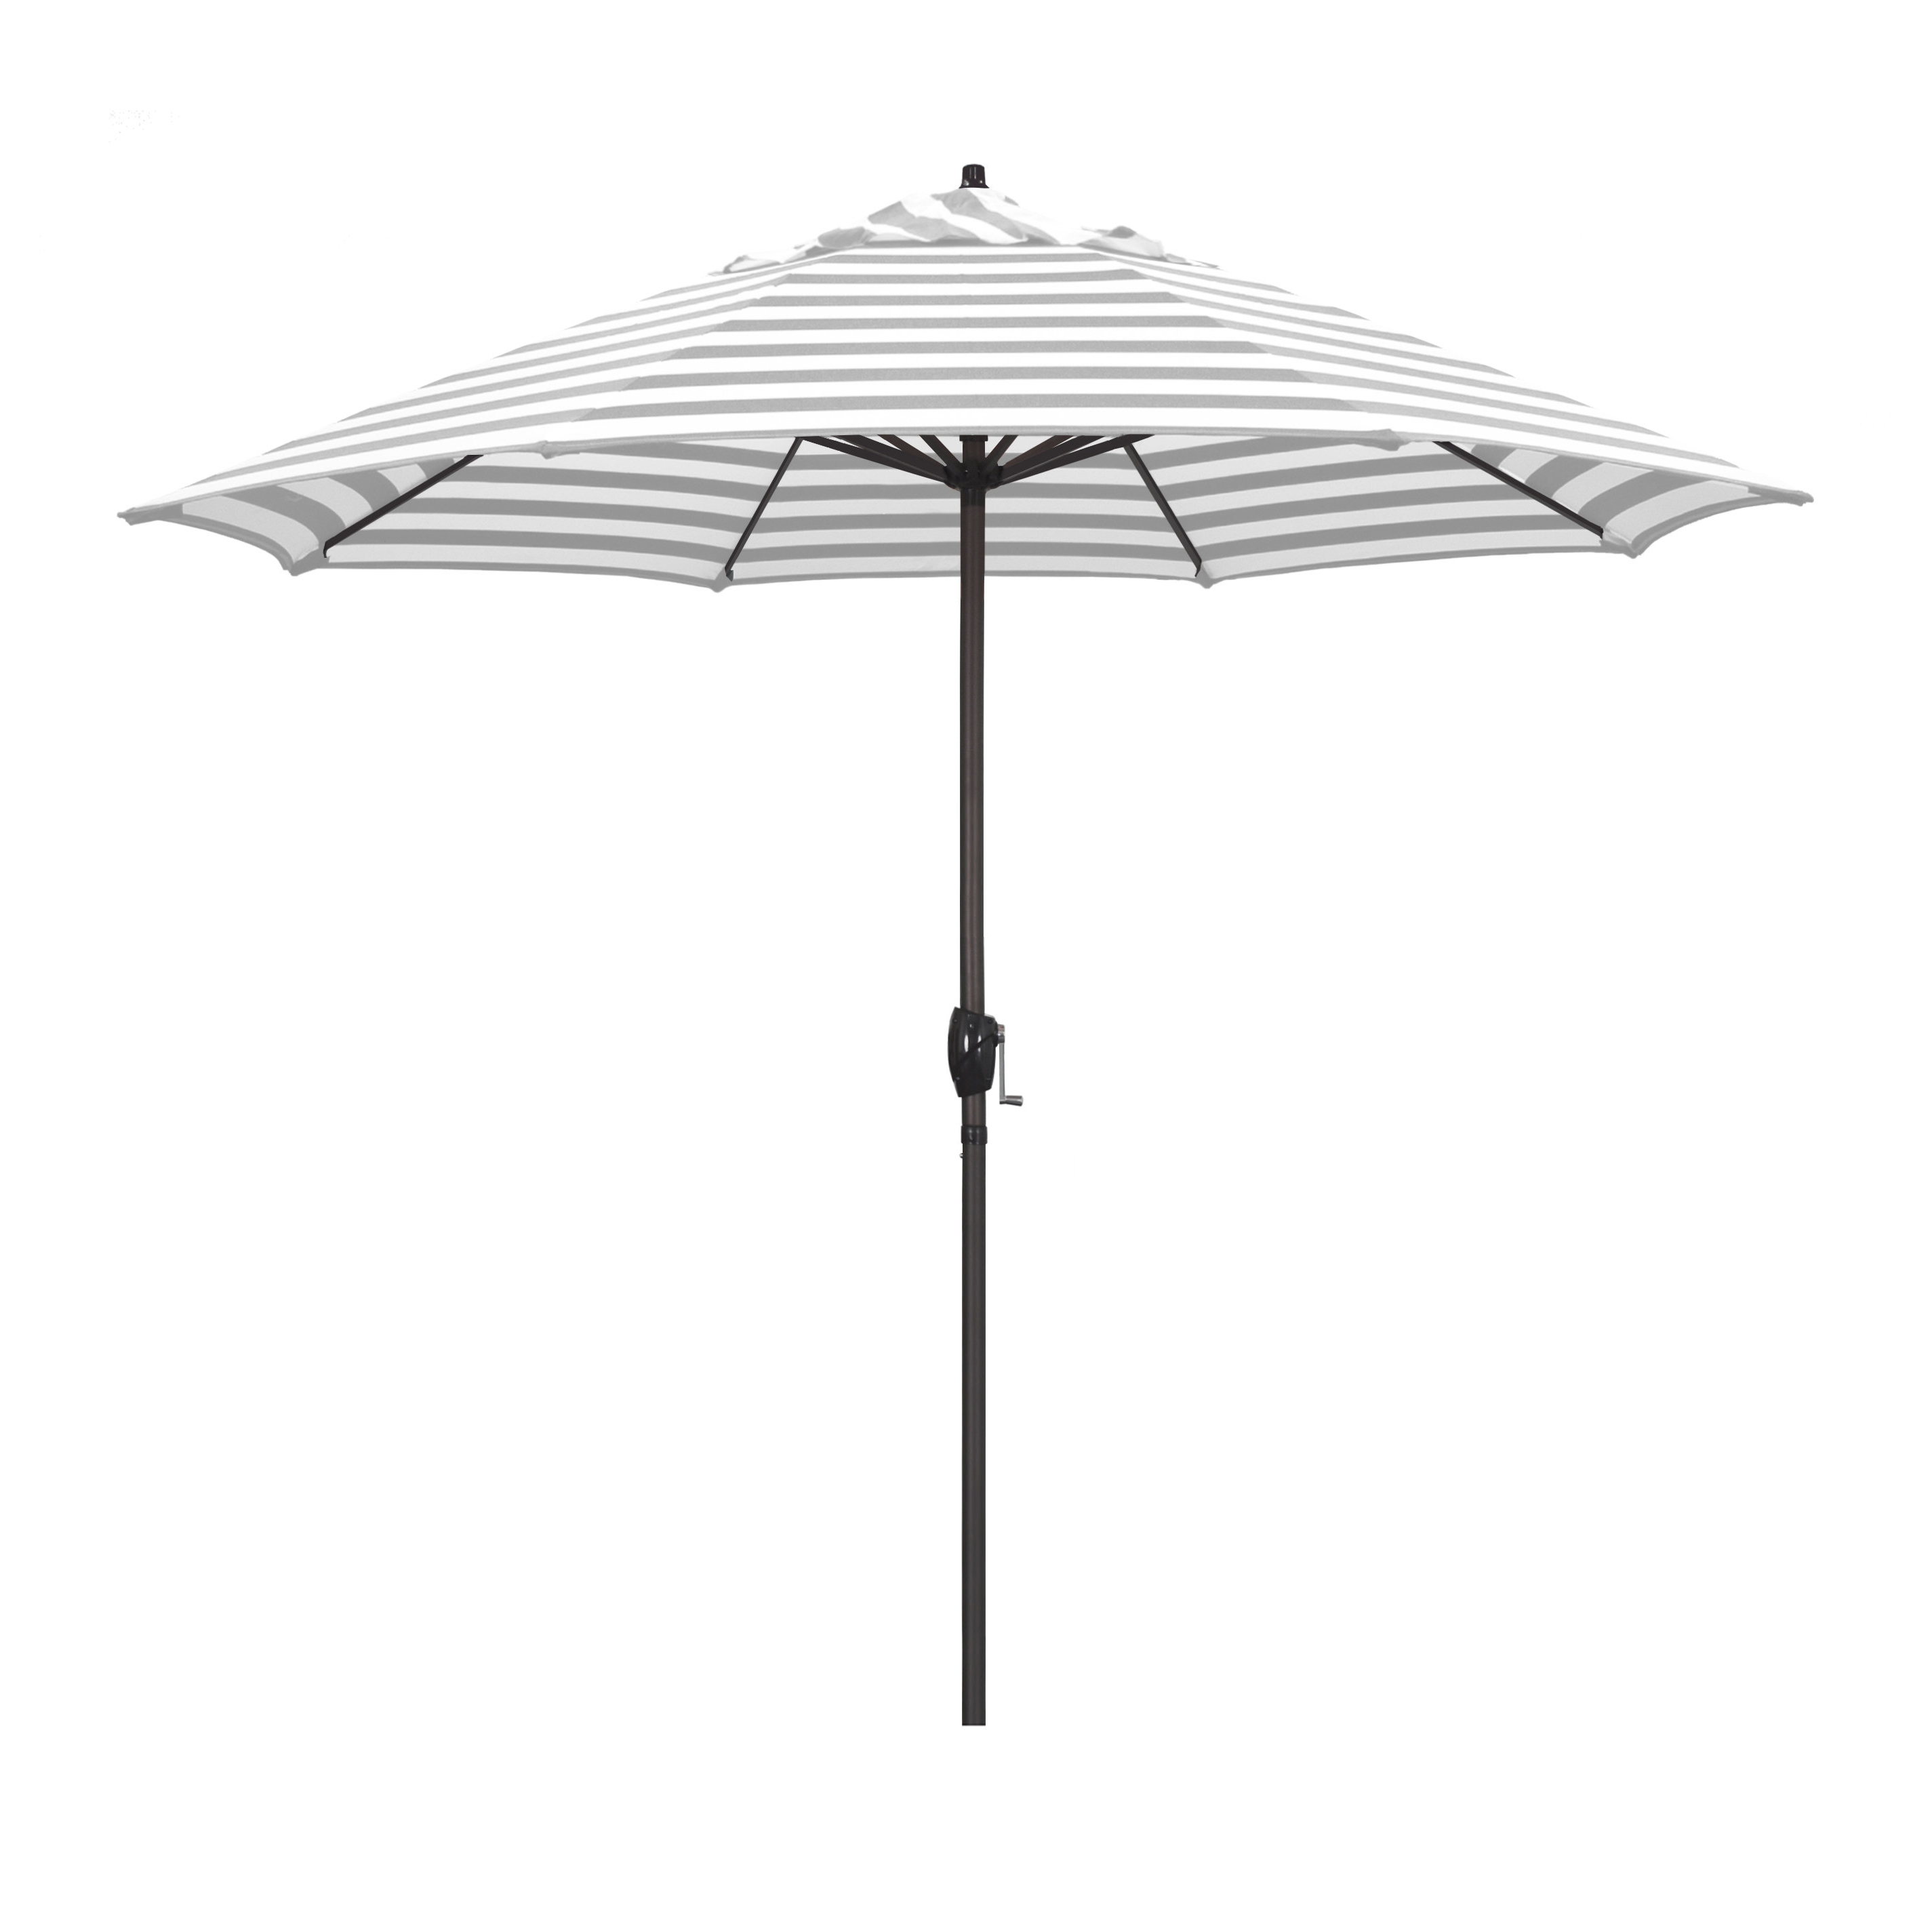 Best And Newest Kelton Market Umbrellas Regarding Cardine 9' Market Umbrella (View 15 of 20)